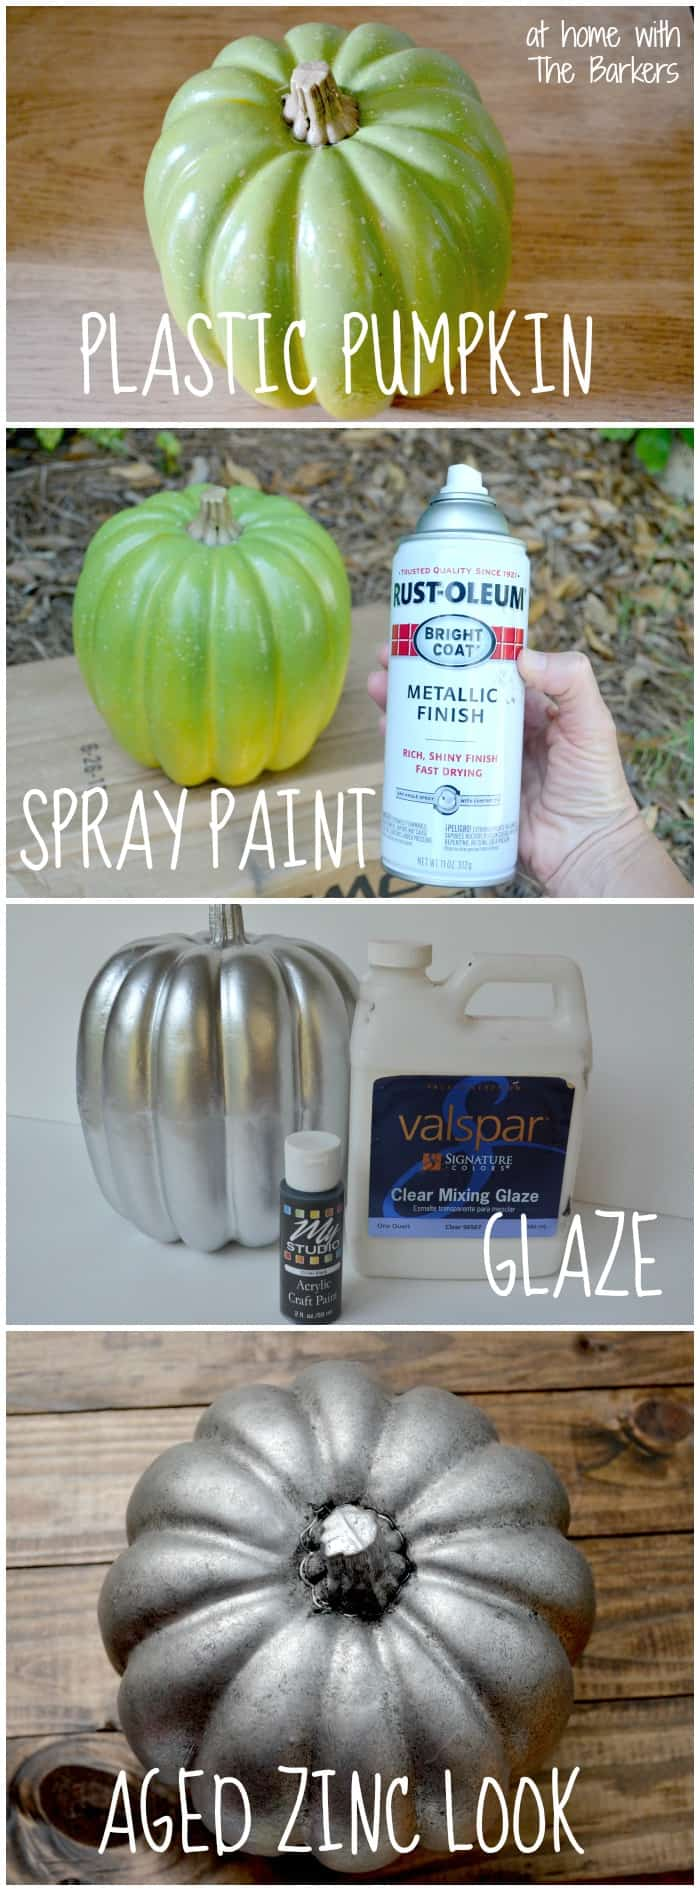 Aged Zinc Look- Plastic Pumpking Makeover